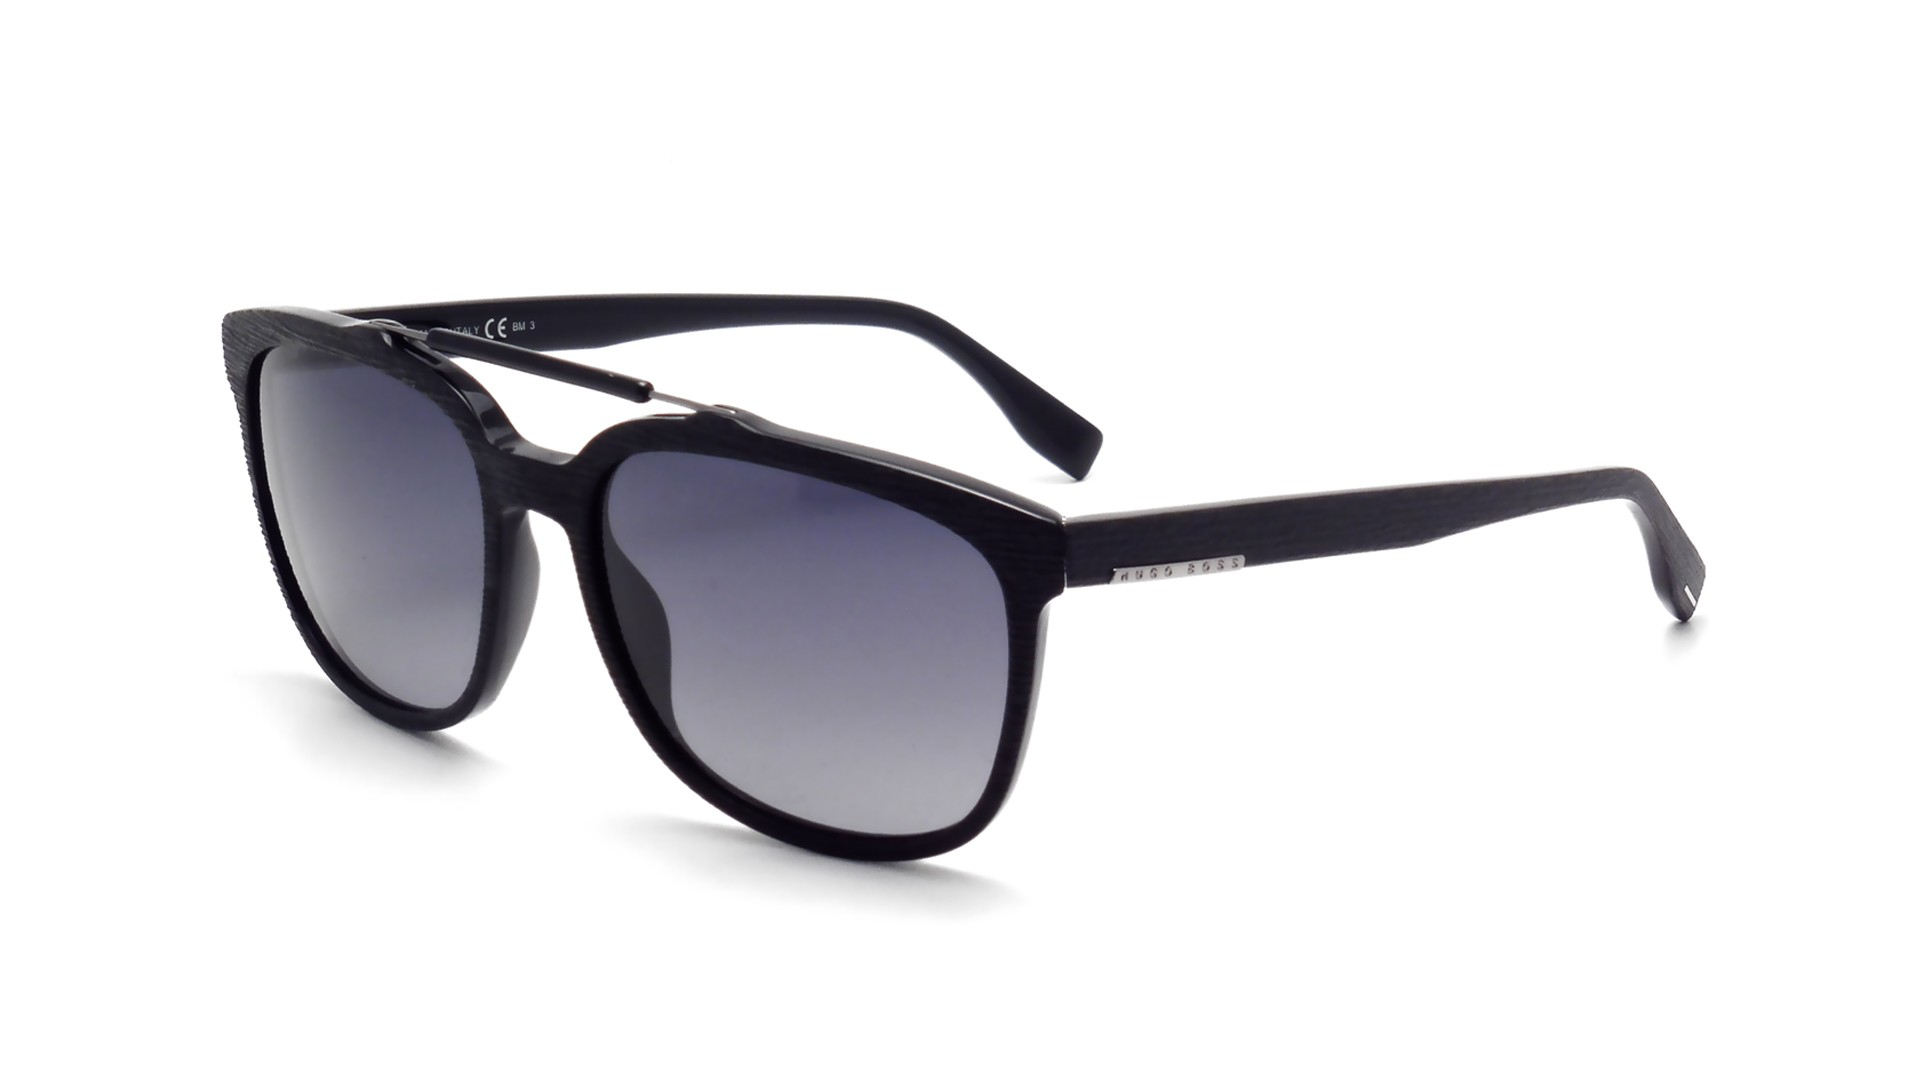 hugo boss 0636s 807hd 56 17 black matte 14242